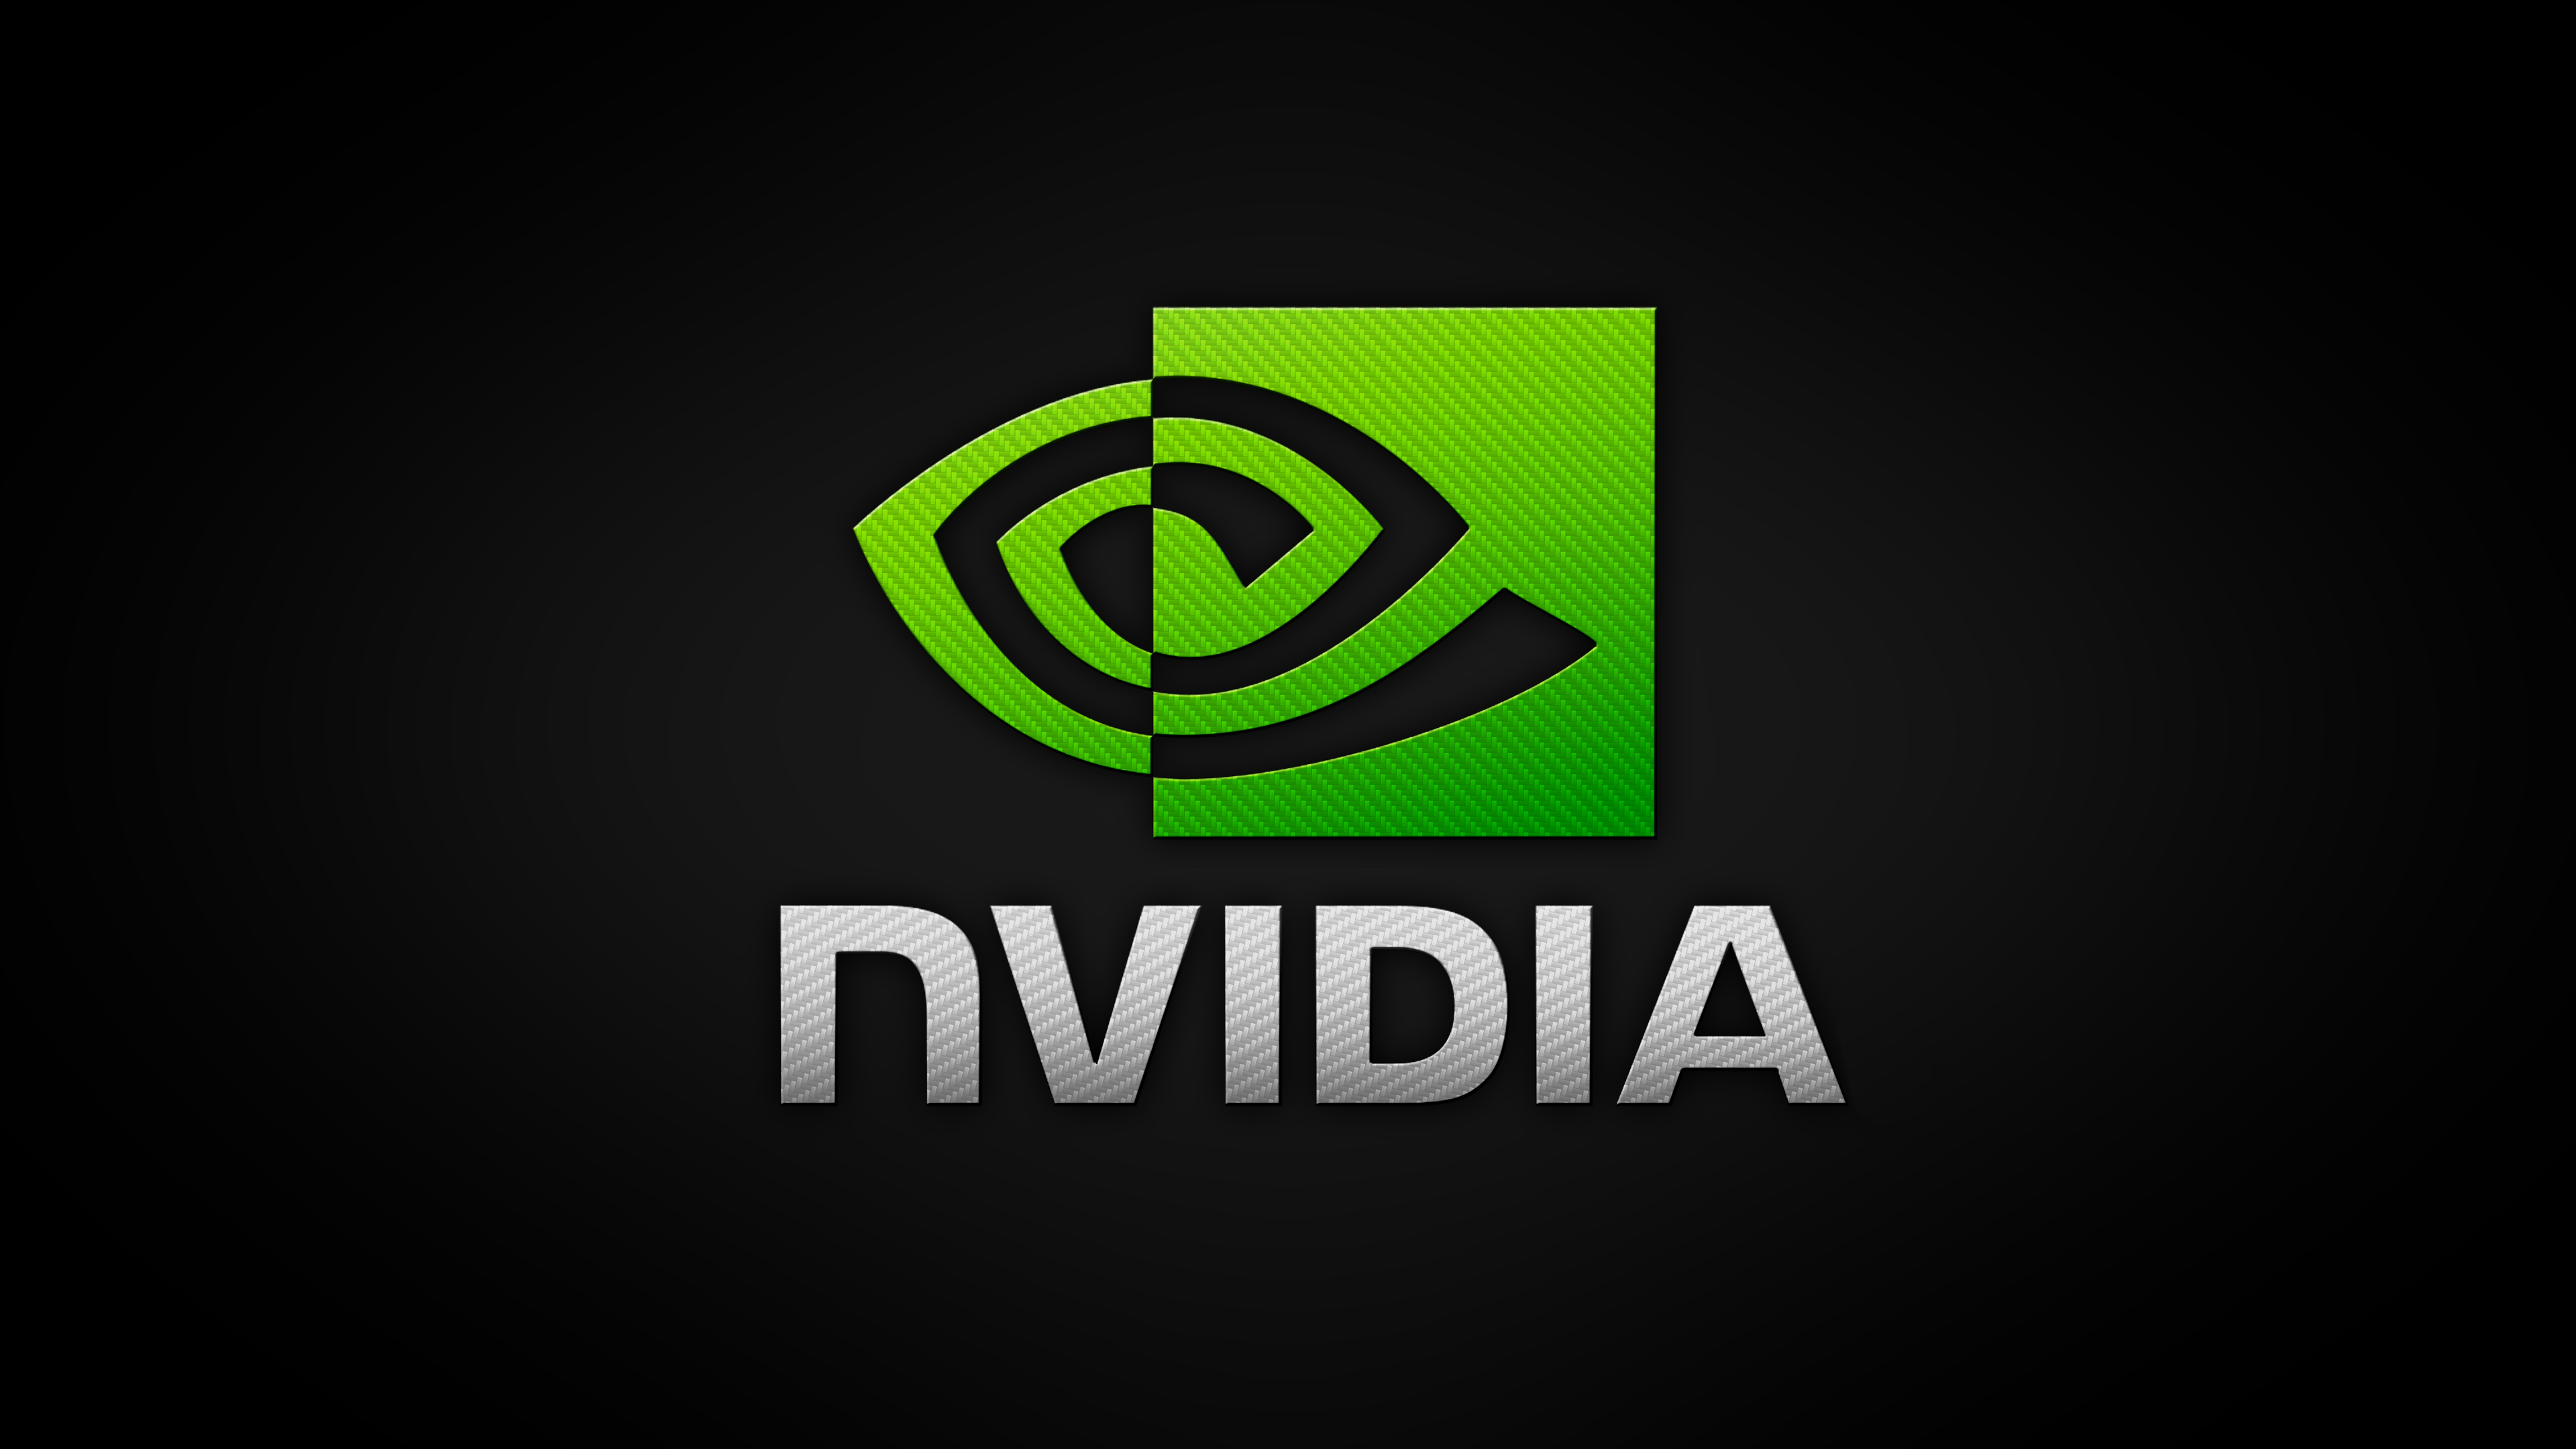 Nvidia Patches High-Risk Flaws In Windows Display Drivers | Silicon